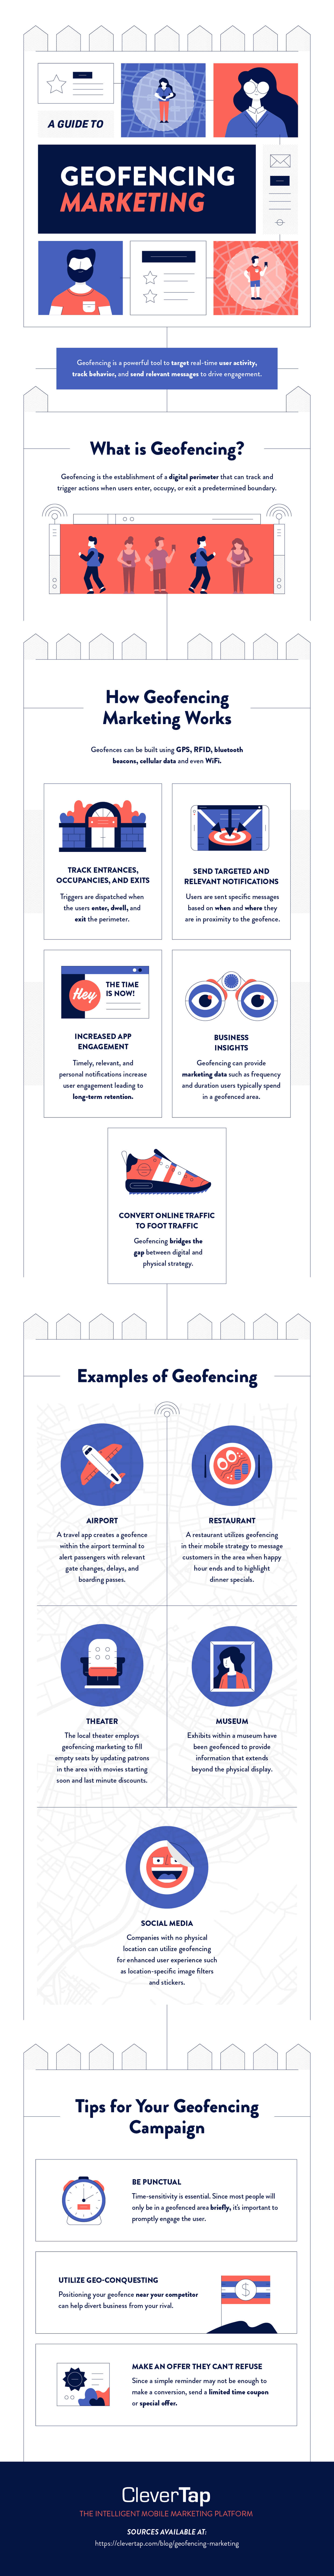 geofencing infographic with tips for mobile marketing